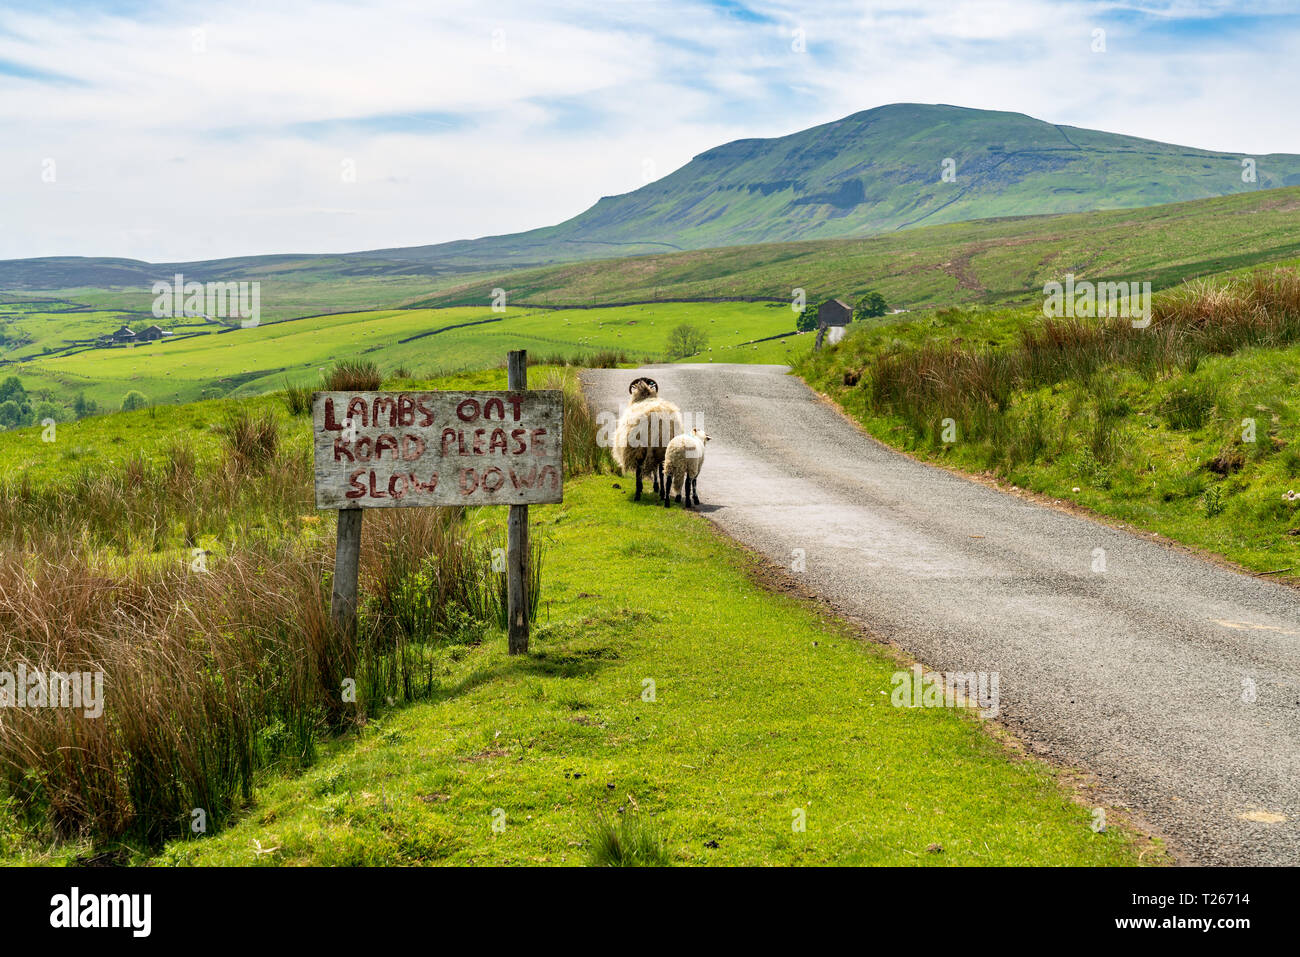 Sign: Lambs on Road please slow down, with sheep near the road, seen near Halton Gill, North Yorkshire, England, UK - Stock Image